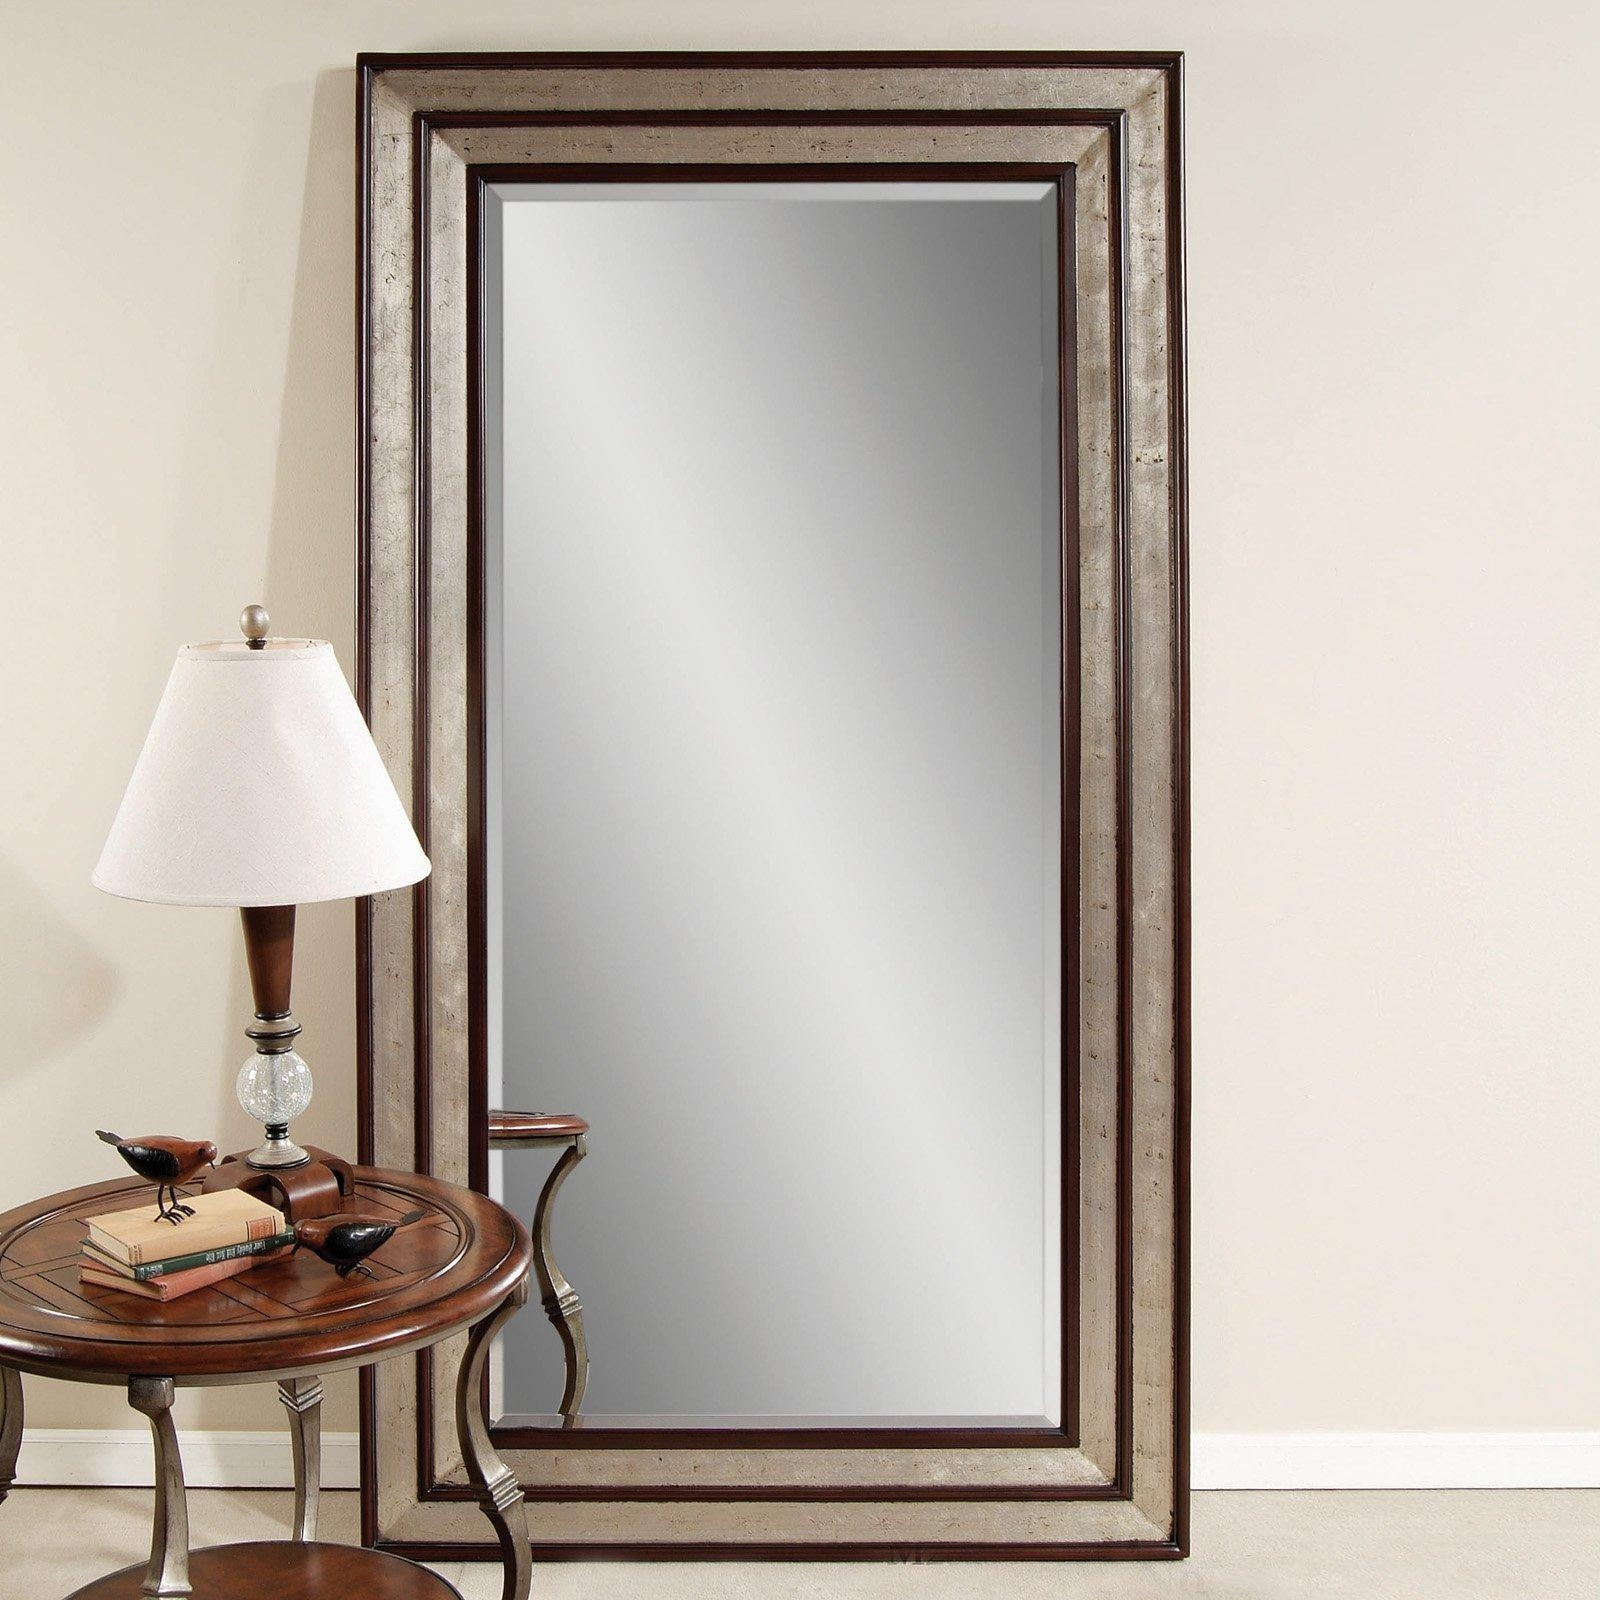 Furniture: Mesmerizing Oversized Floor Mirror For Home Furniture In Free Standing Table Mirror (Image 7 of 20)